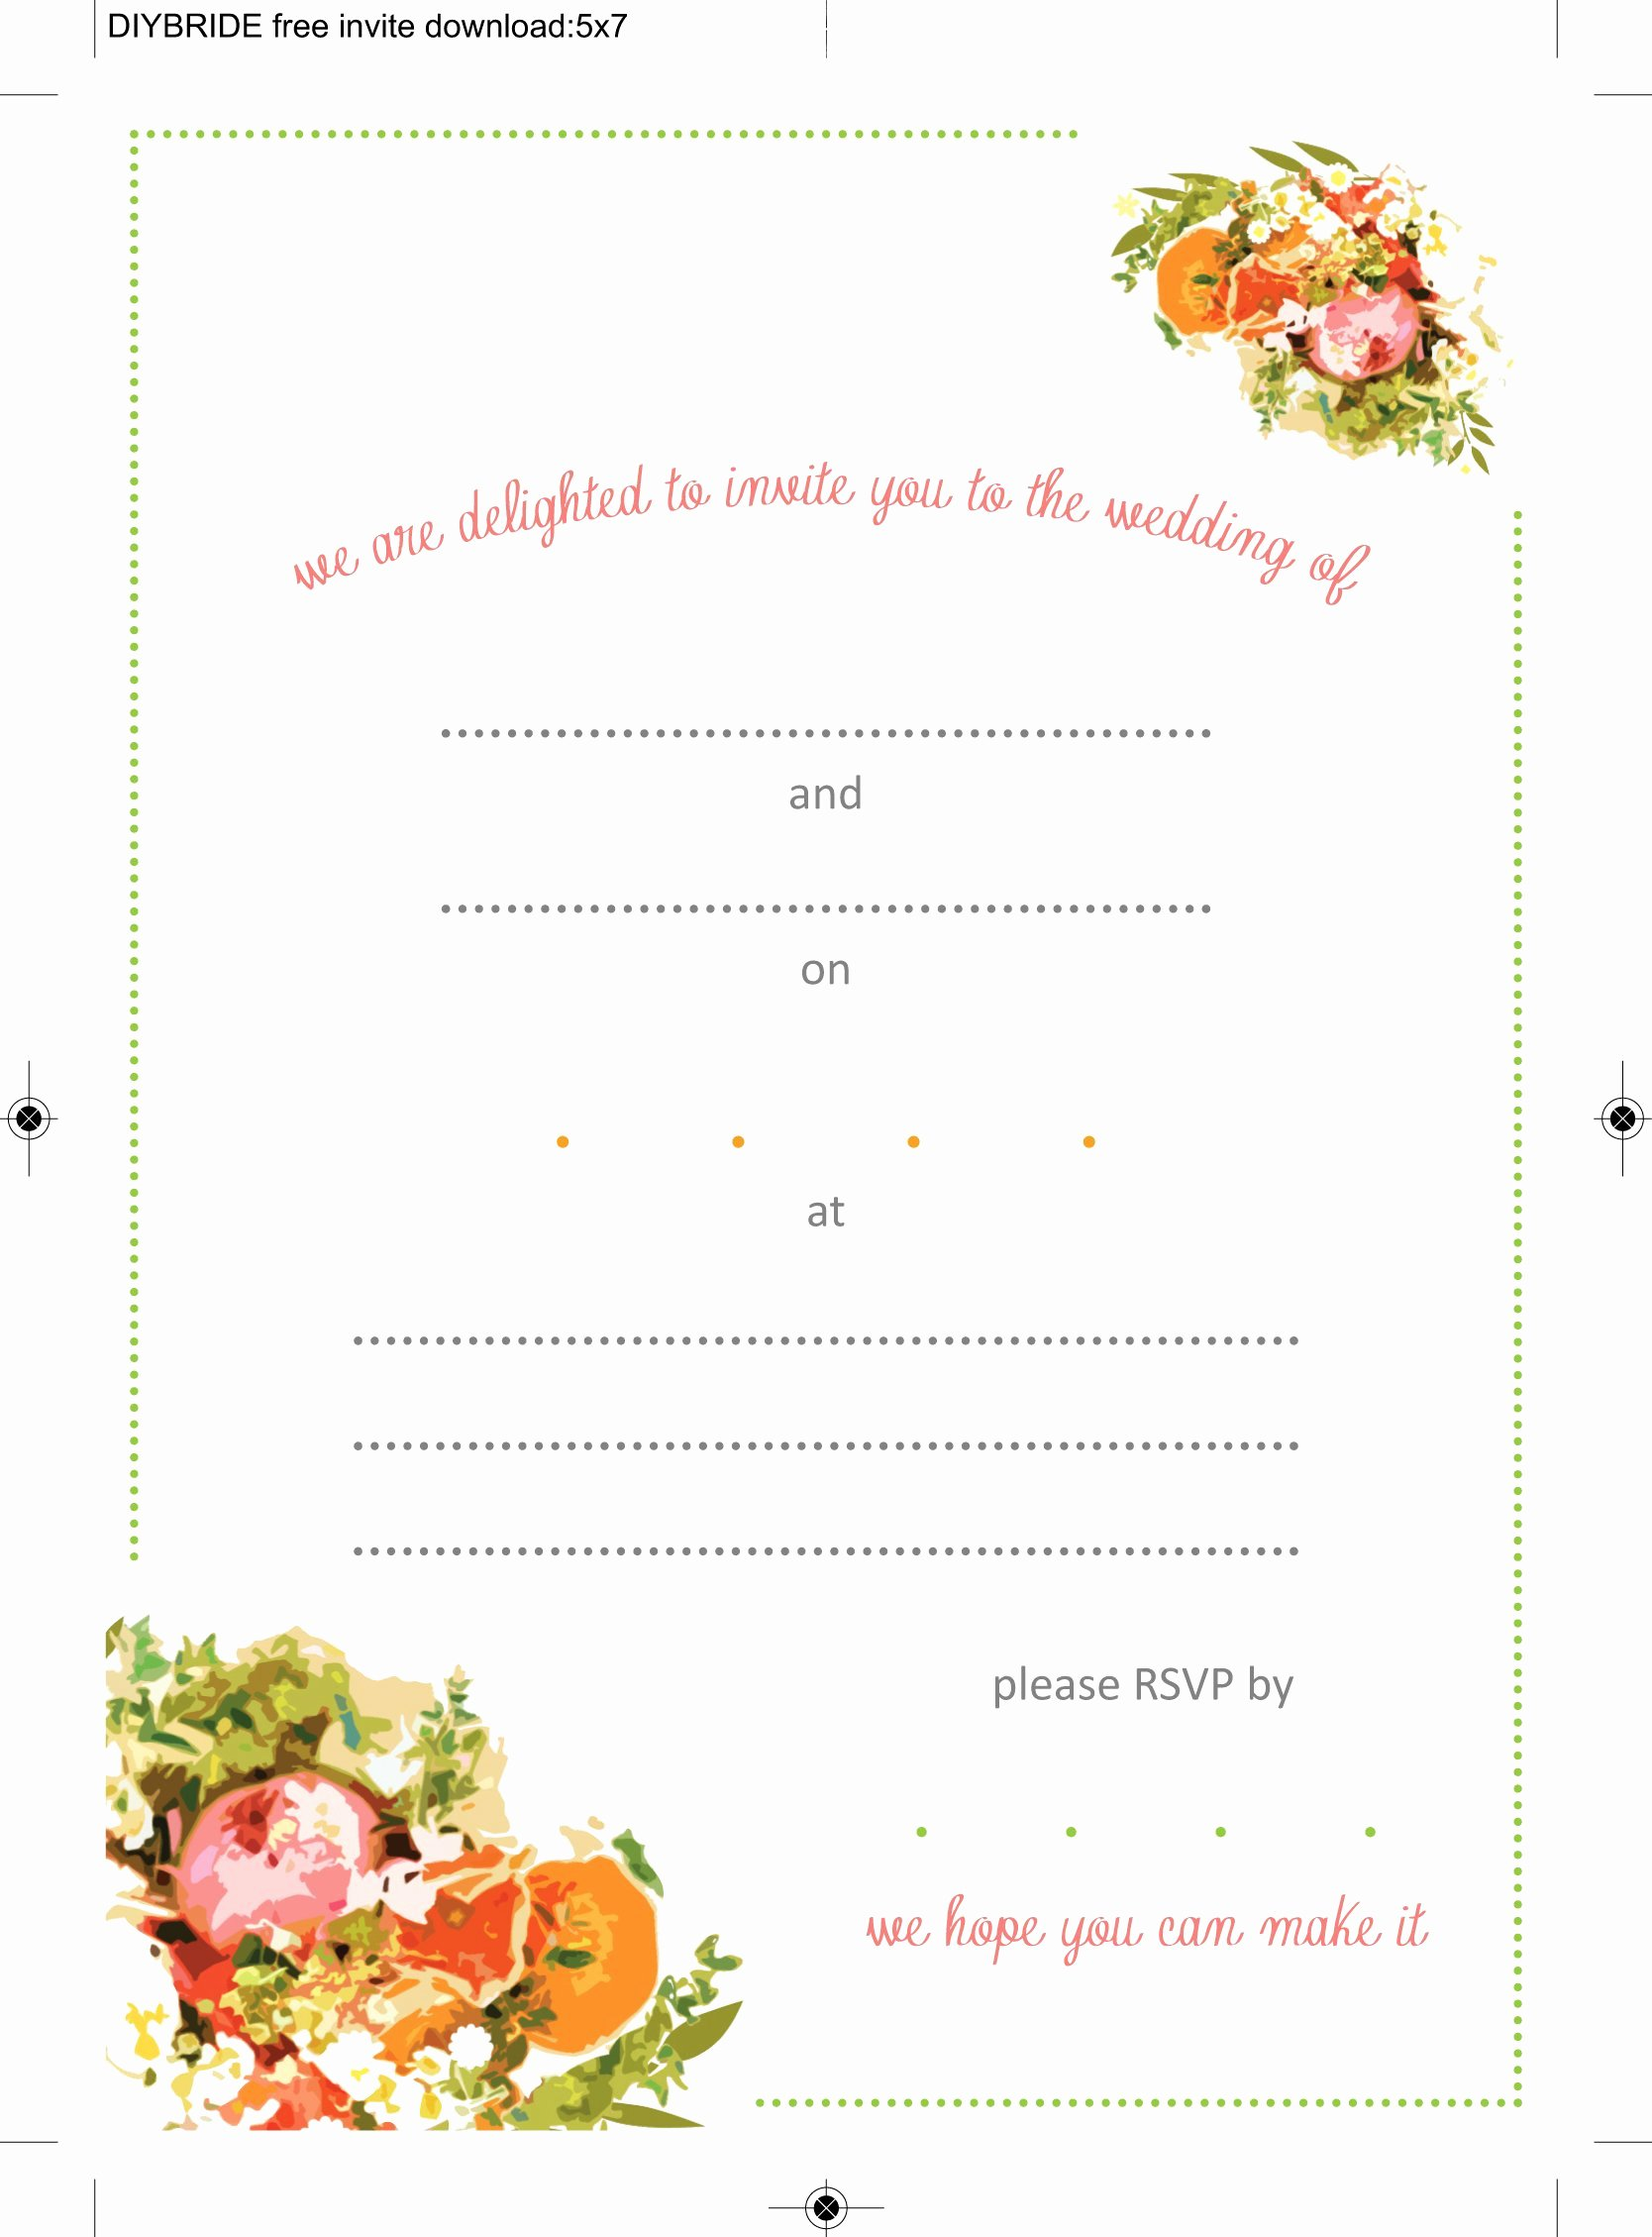 Free Wedding Invitation Template Unique Wedding Invitation Templates that are Cute and Easy to